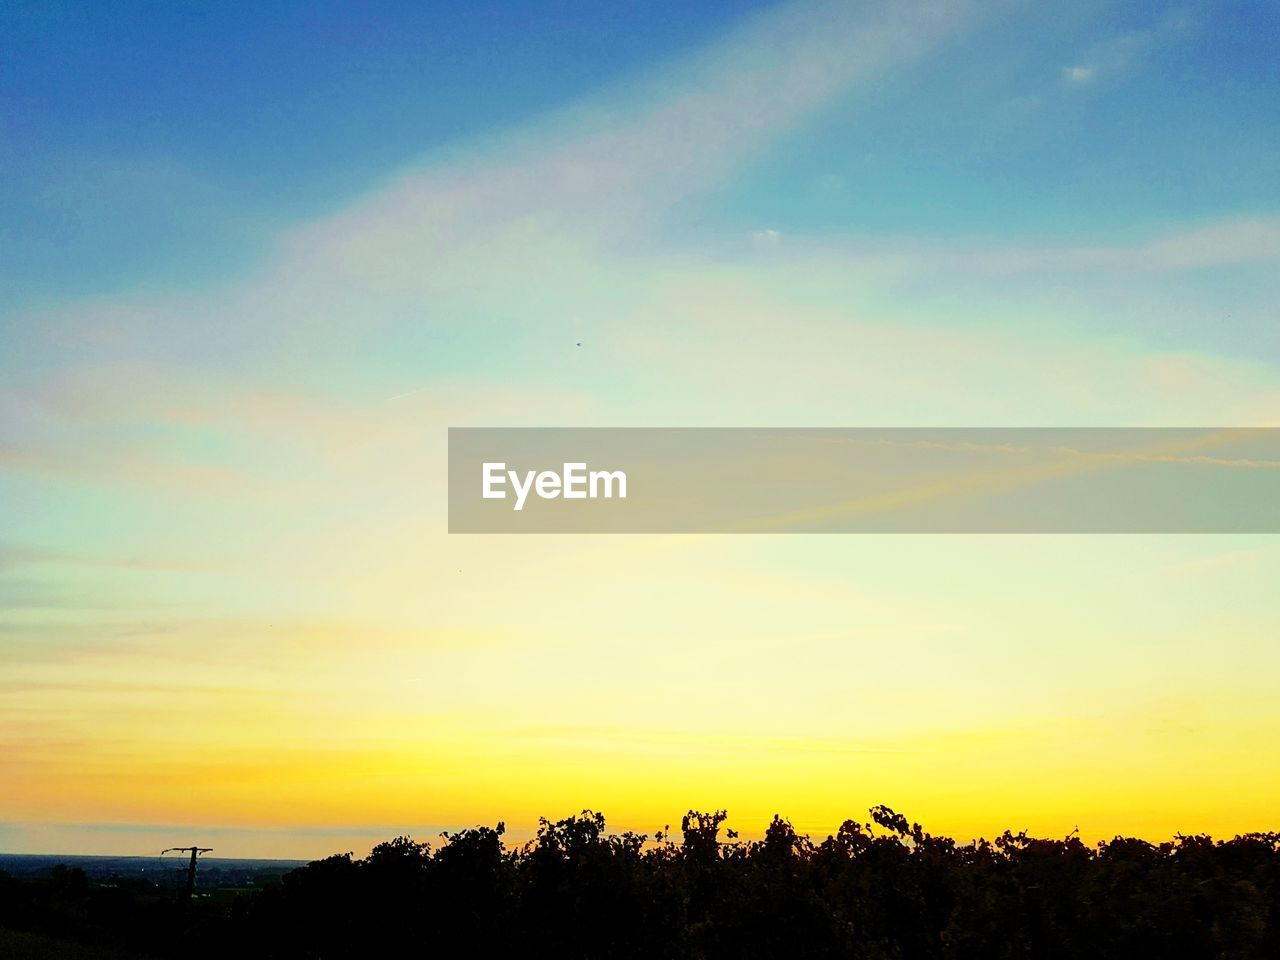 sunset, sky, silhouette, tree, beauty in nature, scenics, nature, no people, tranquility, tranquil scene, outdoors, day